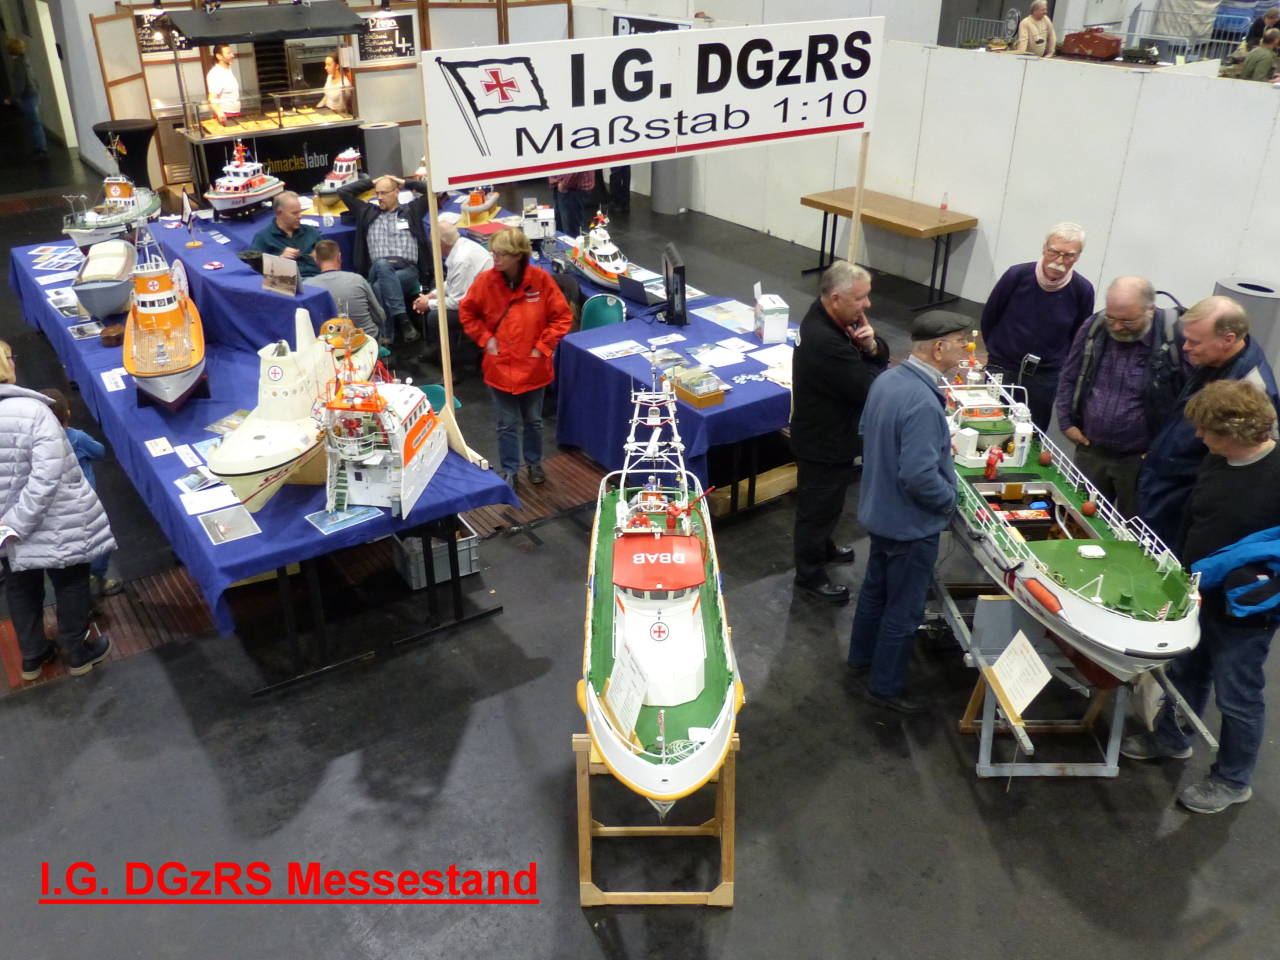 I.G. DGzRS Messestand